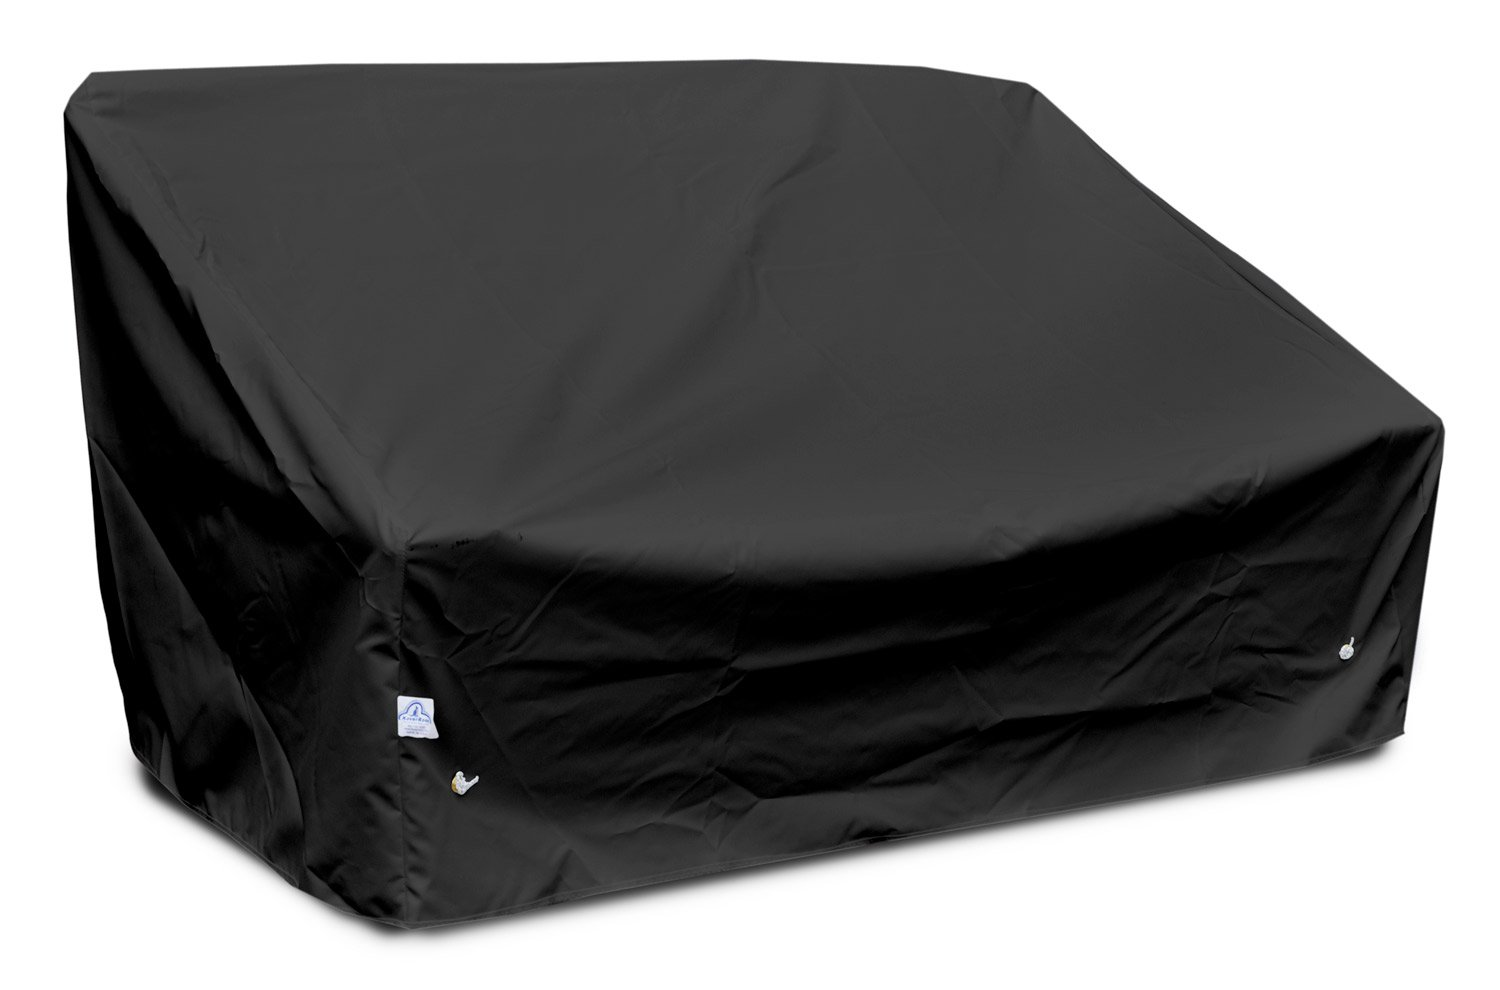 KoverRoos Weathermax 76350 Deep 2-Seat Sofa Cover, 58-Inch Width by 35-Inch Diameter by 32-Inch Height, Black